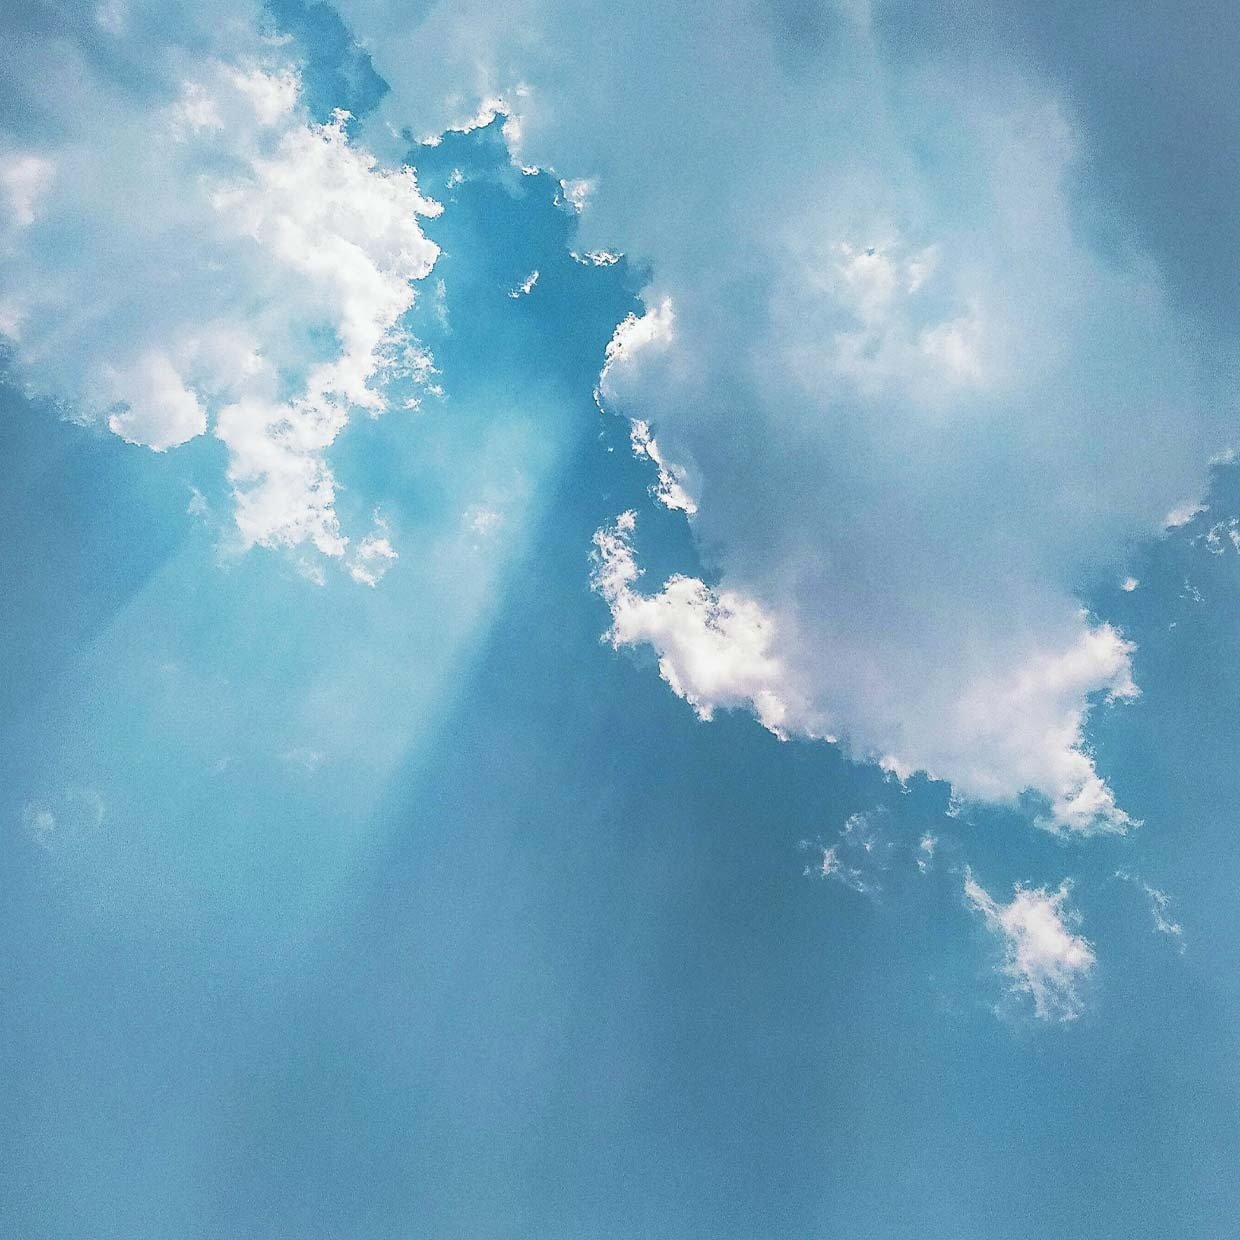 An image of the sky with sunlight coming through the clouds